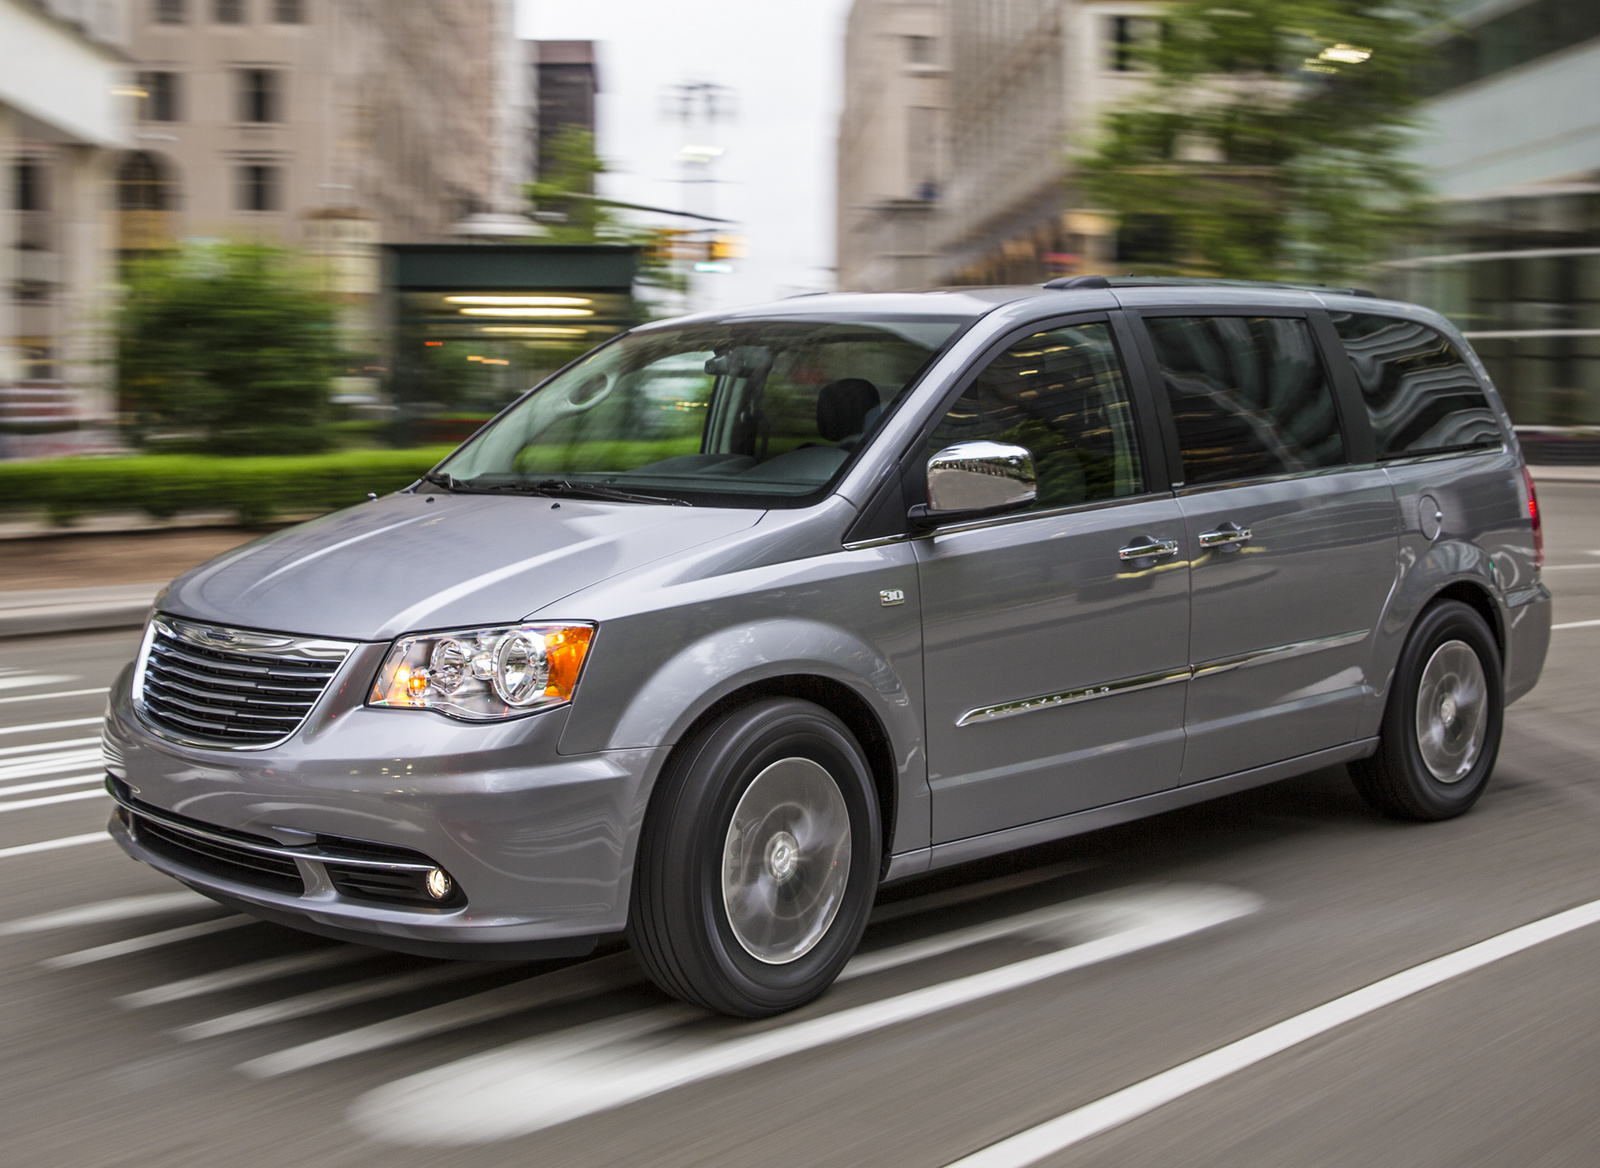 chrysler town & country pictures #15